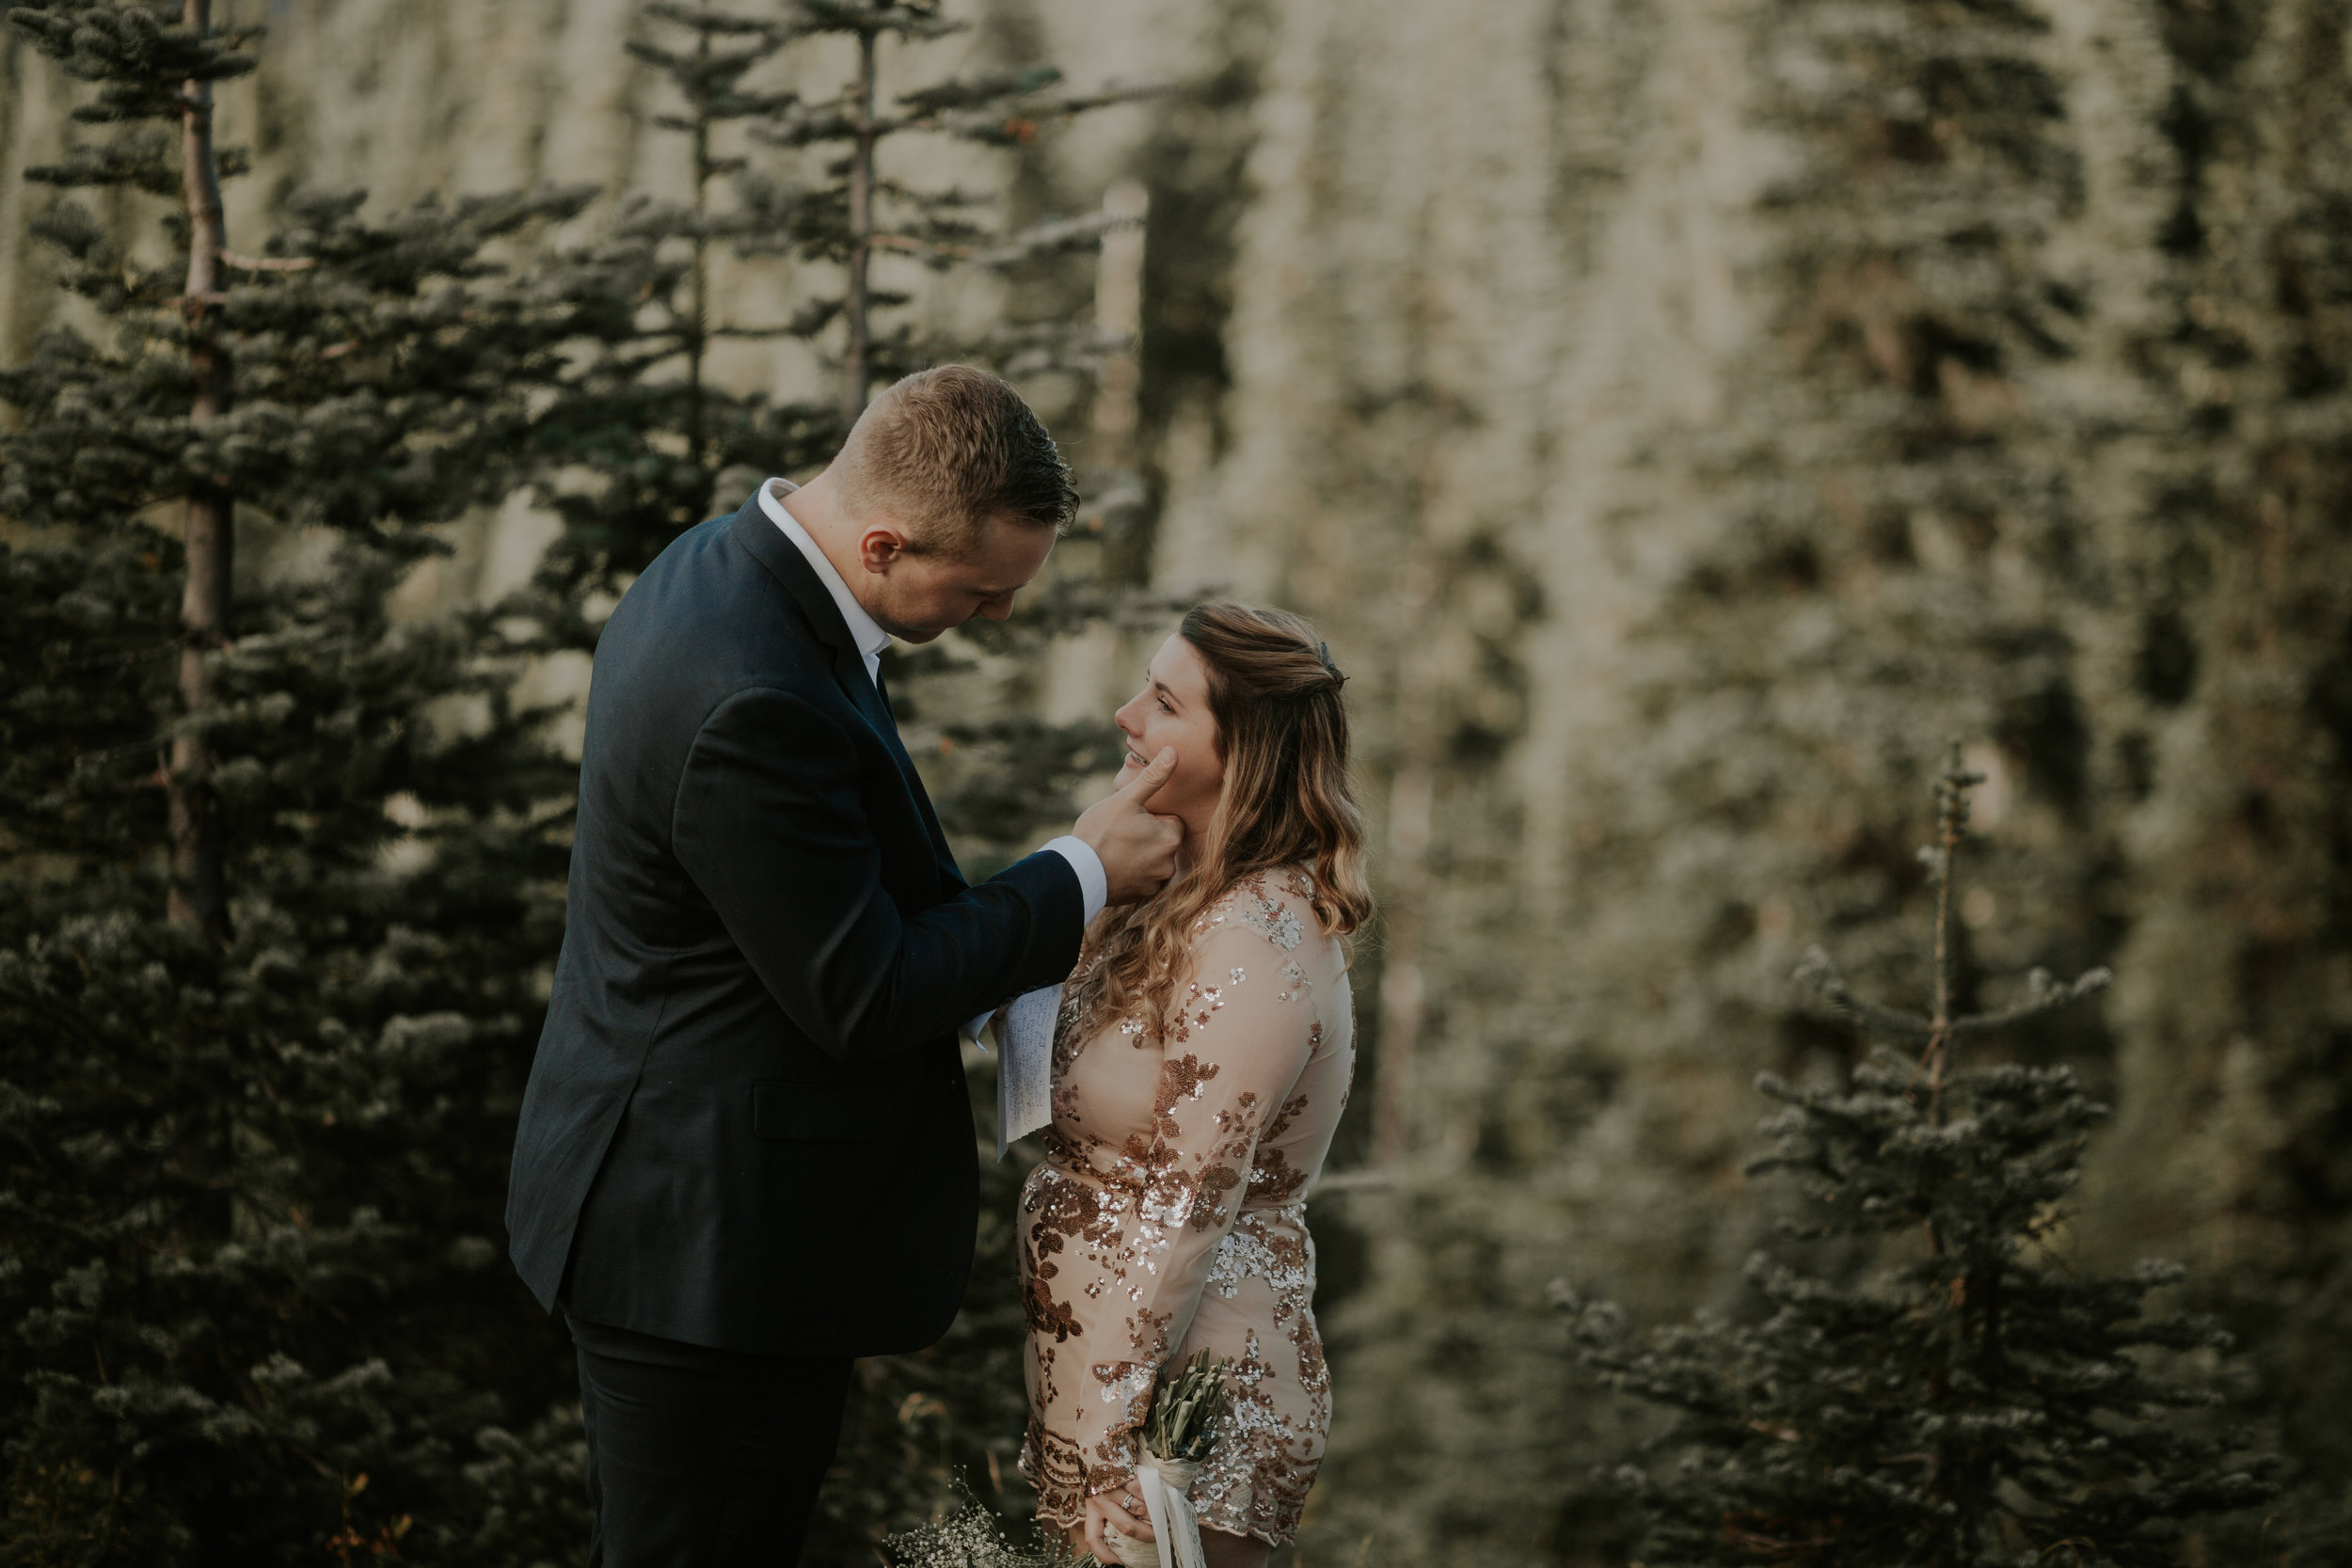 PNW-Hurricane-Ridge-Port-Angeles-Washington-elopement-photographer-kayla-dawn-photography-kayladawnphoto-wedding-anniversary-photoshoot-olympic-peninsula-157.jpg